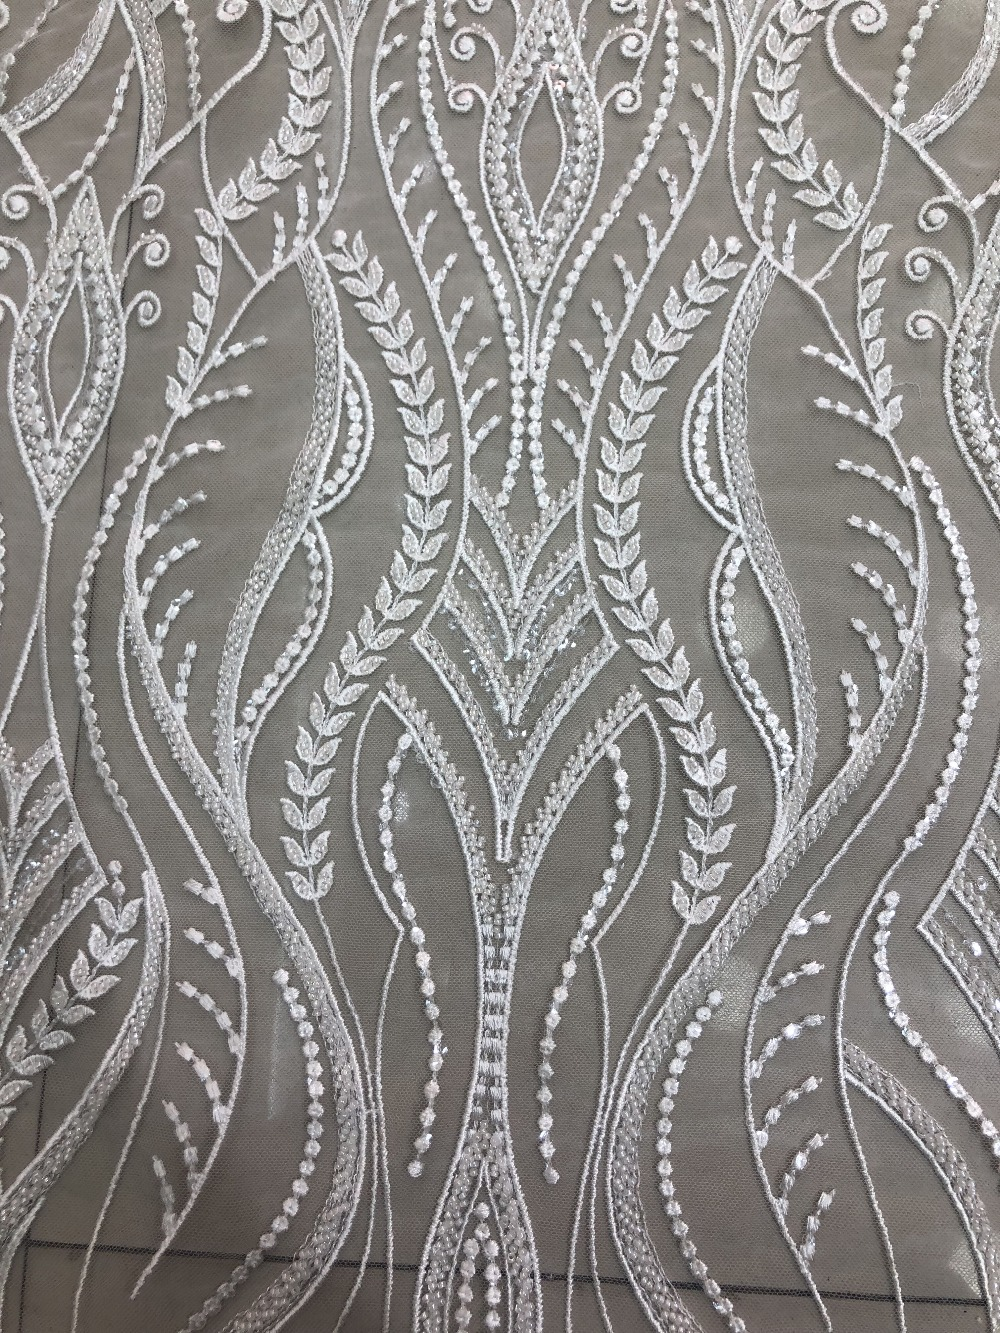 nice looking feather embroidery tulle mesh lace fabric Sat 3 3106 with good quality for party